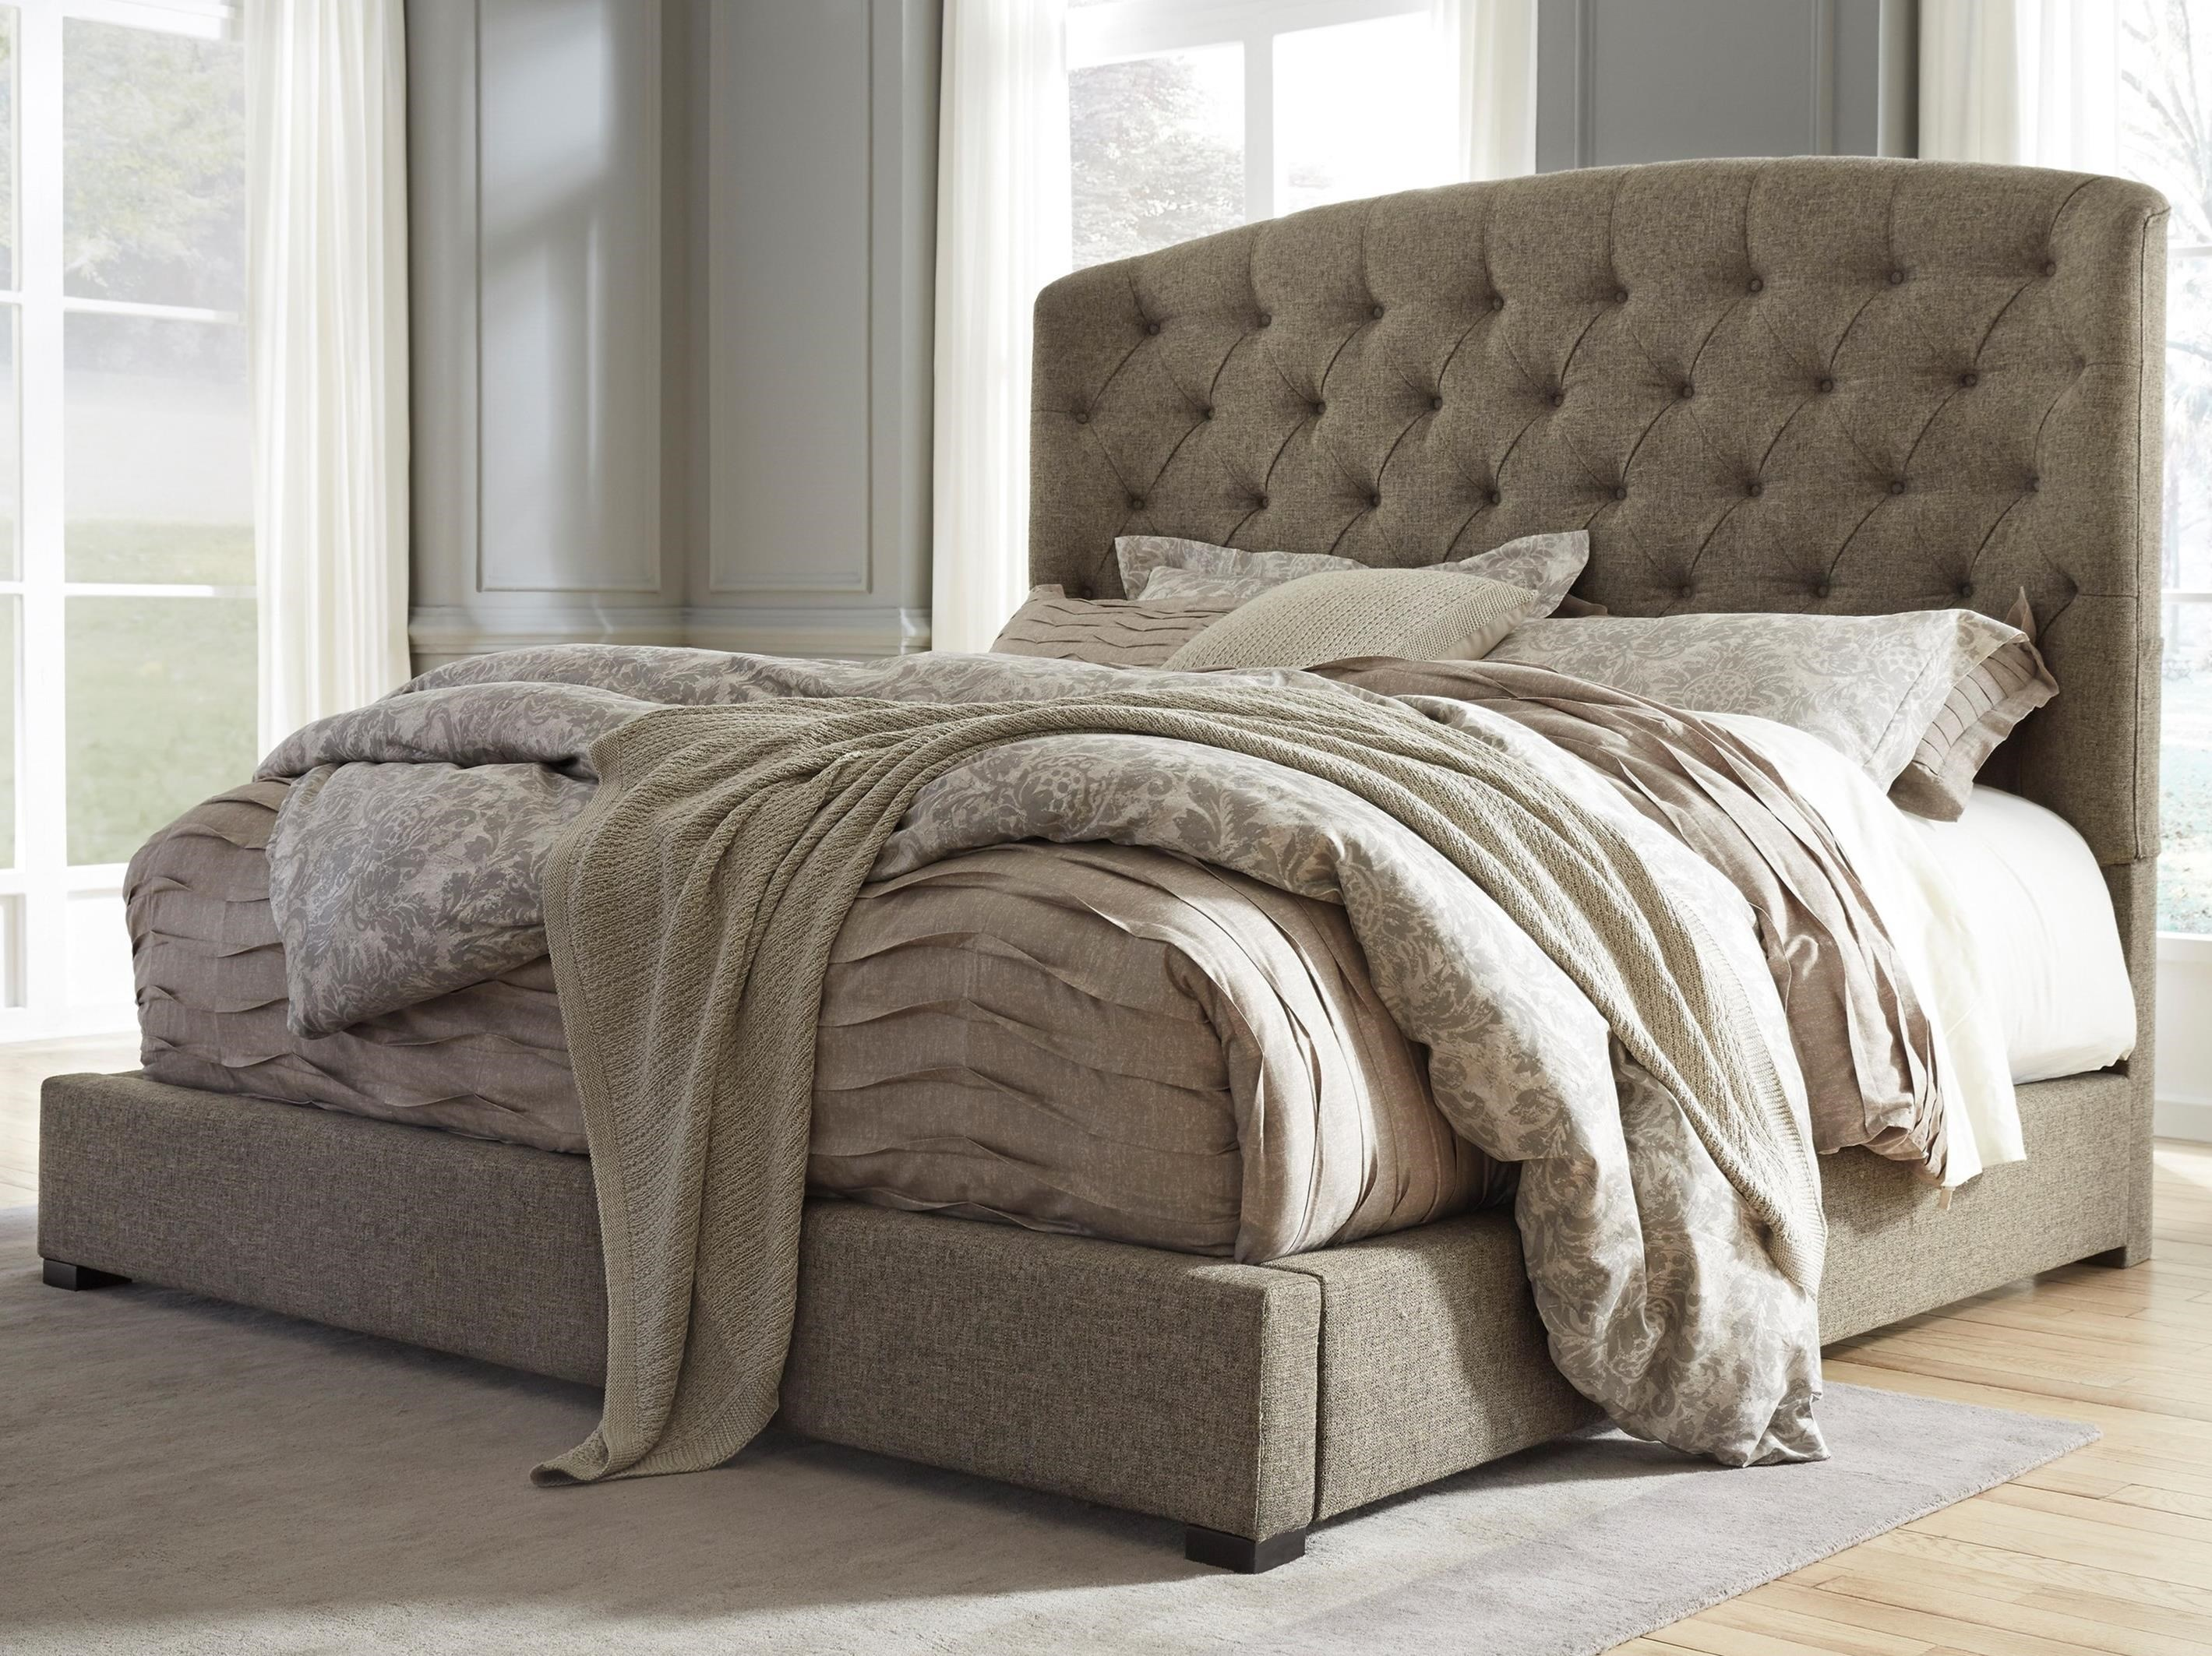 signature design by ashley gerlane queen upholstered bed with, Headboard designs